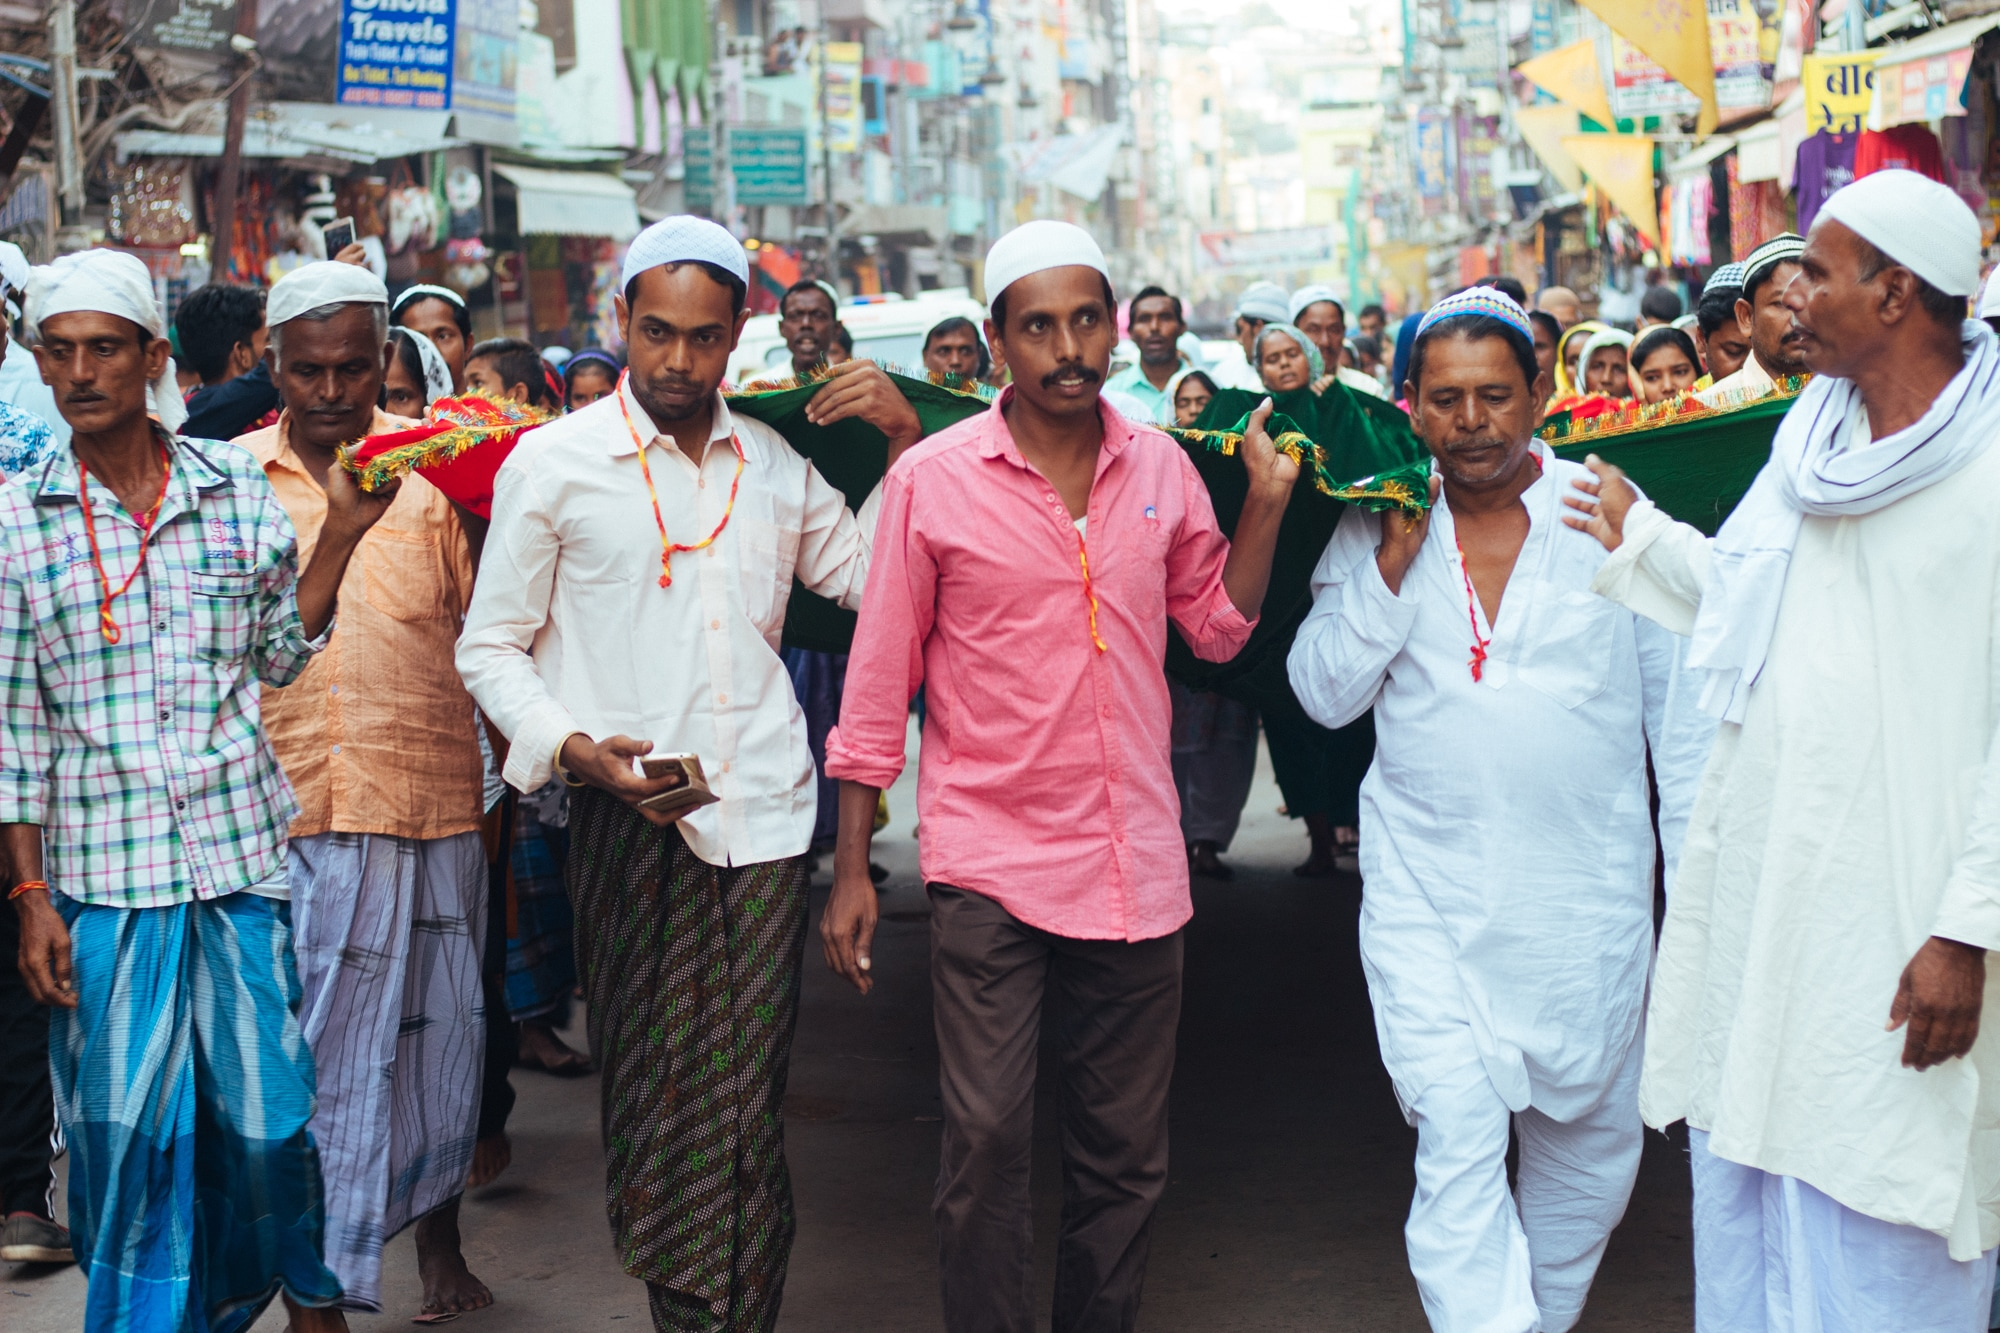 A group of people performing religious ritual in Ajmer